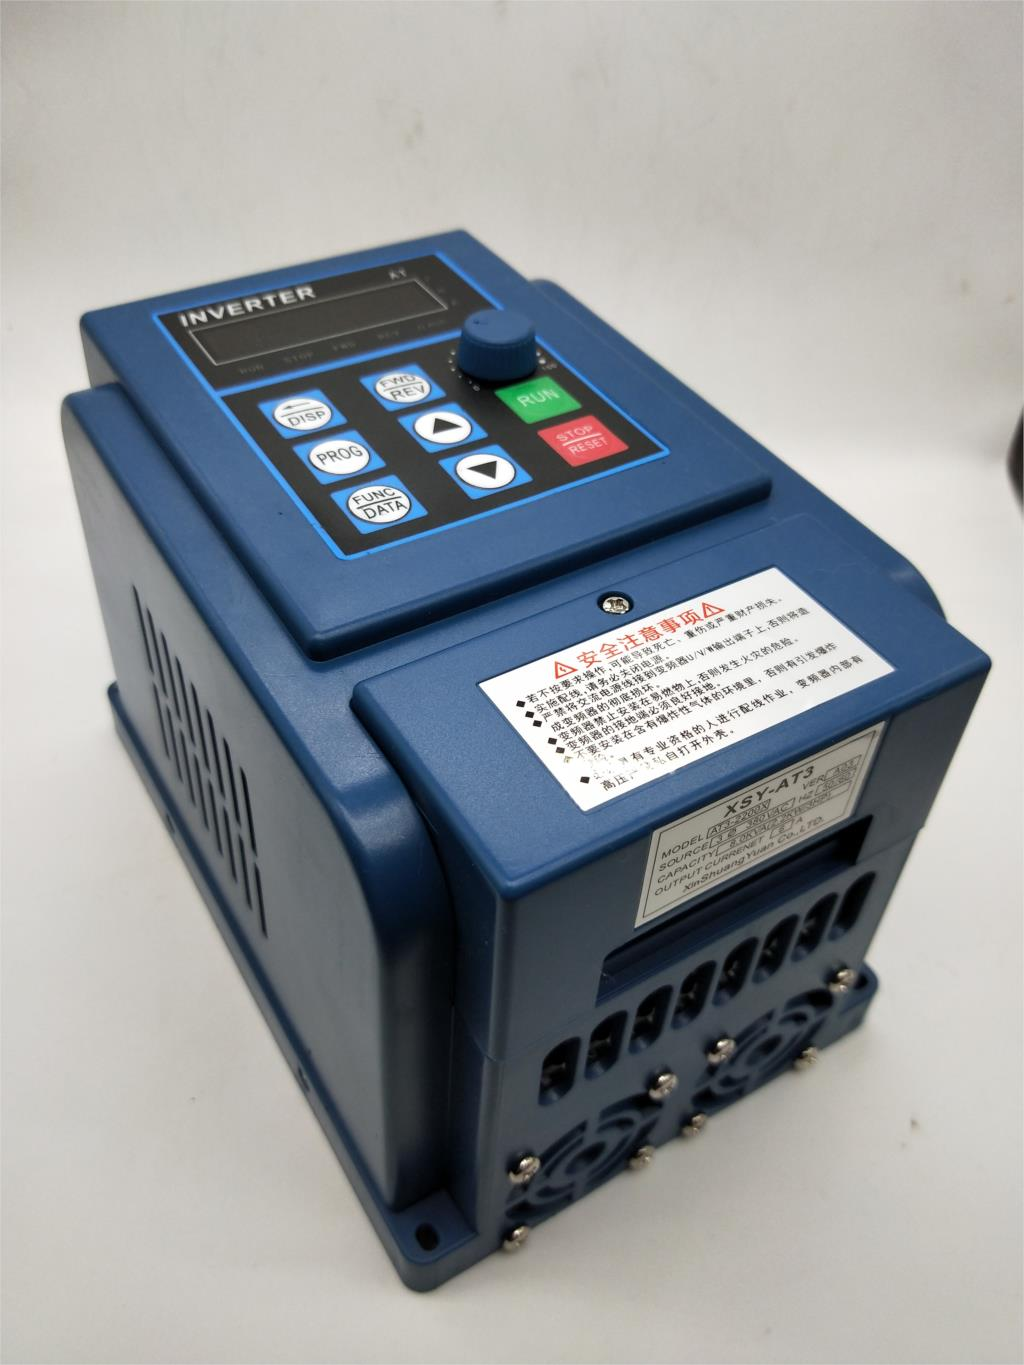 VFD 380 4KW AC 380V 1 5kW 2 2KW 4KW 5 5KW 7 5KW Variable Frequency